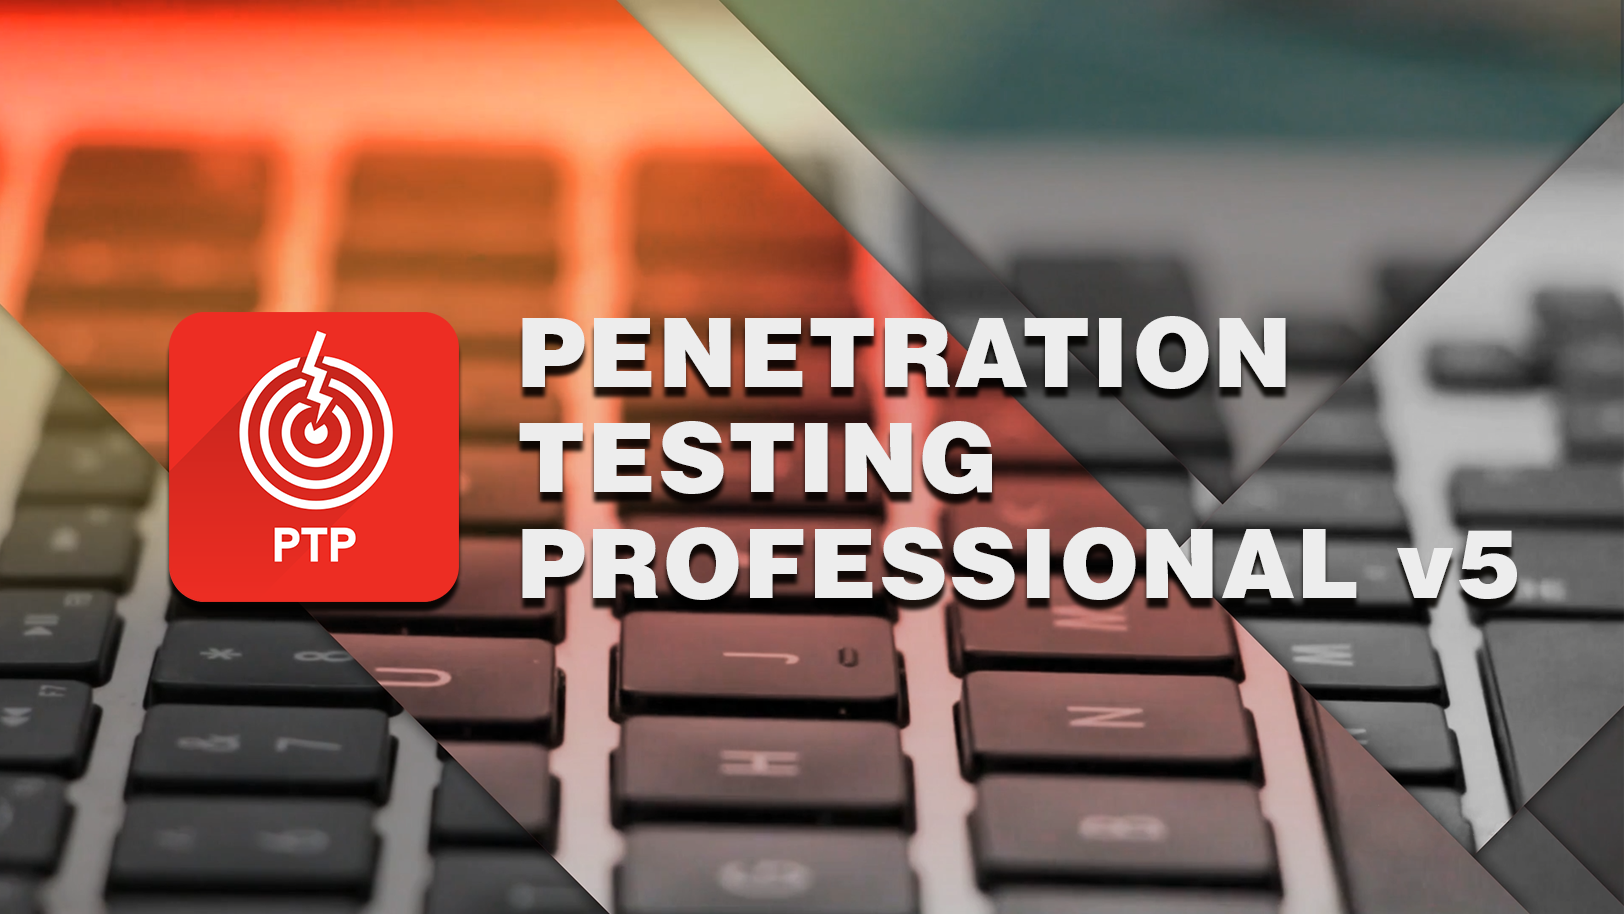 Penetration Testing Professional Training Course - PTP